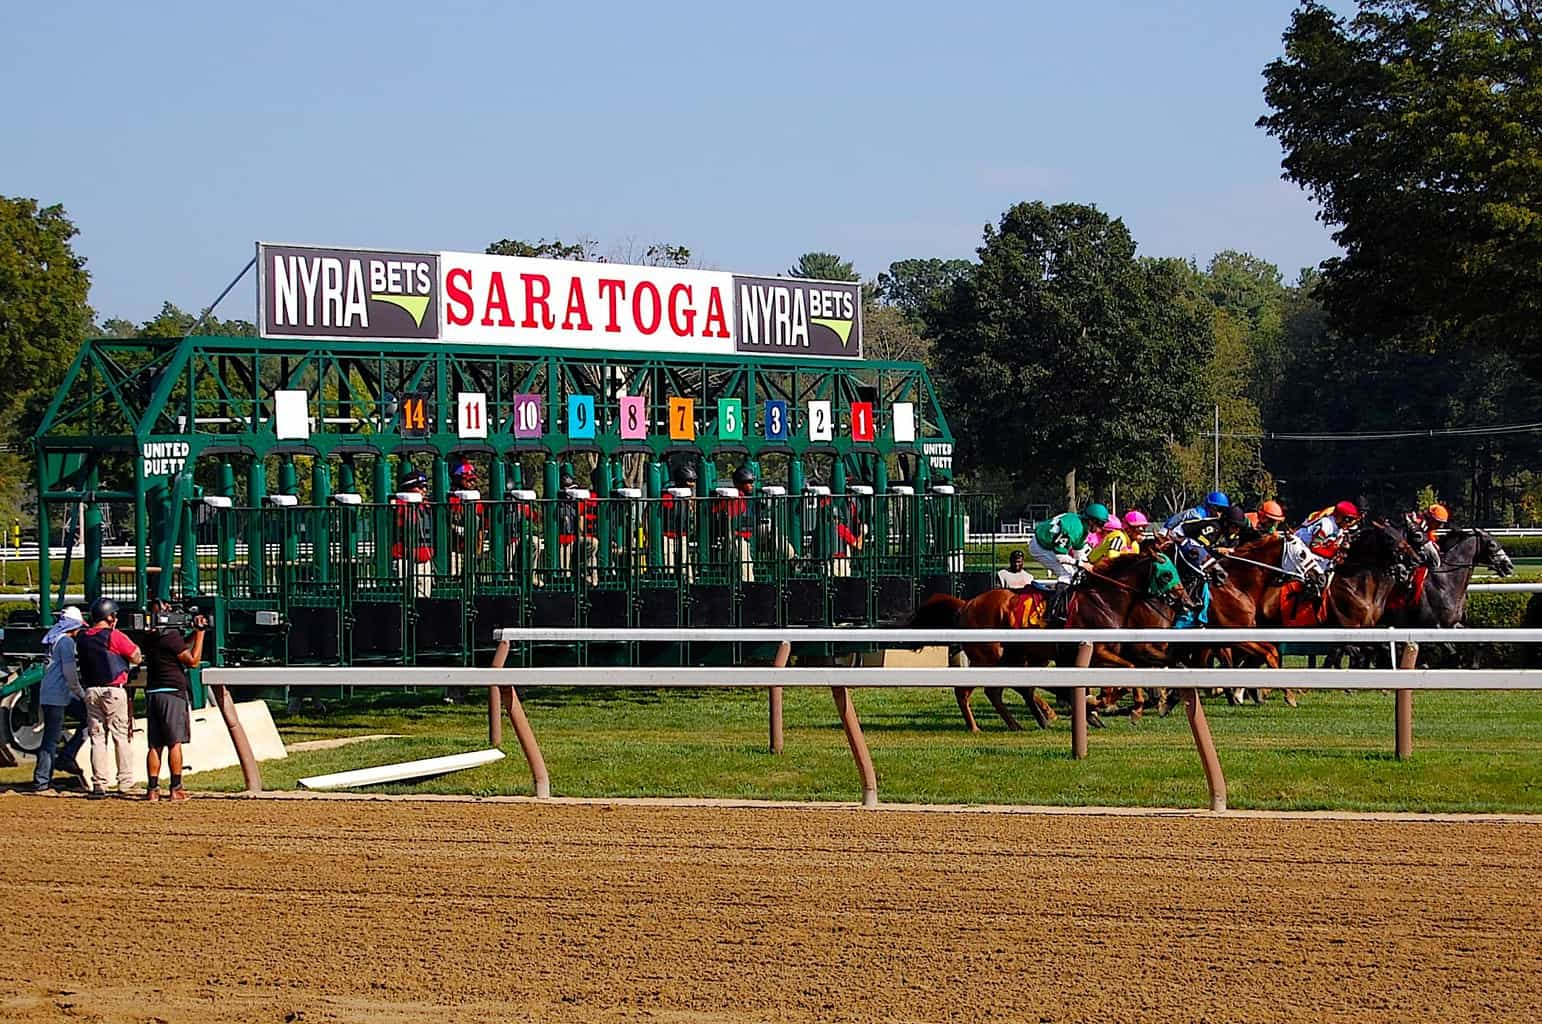 The horses coming out of the starting gate at Saratoga Racetrack.